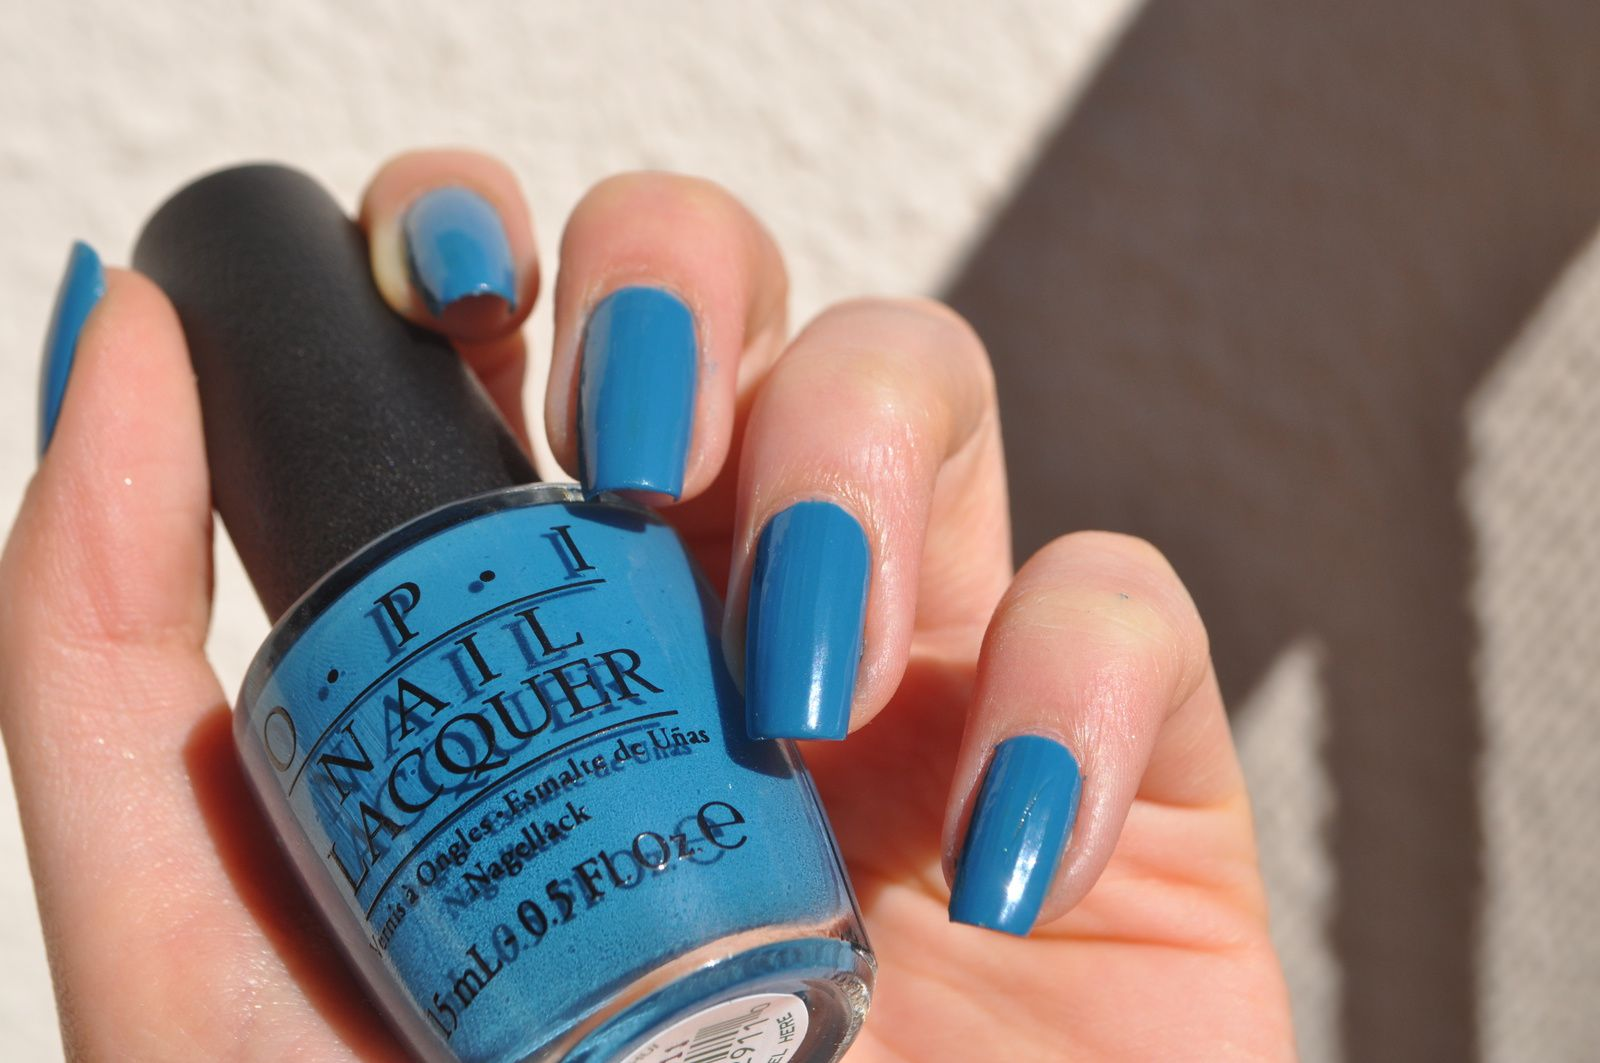 Swatch//OPI suzy say feng chui+ dry marble